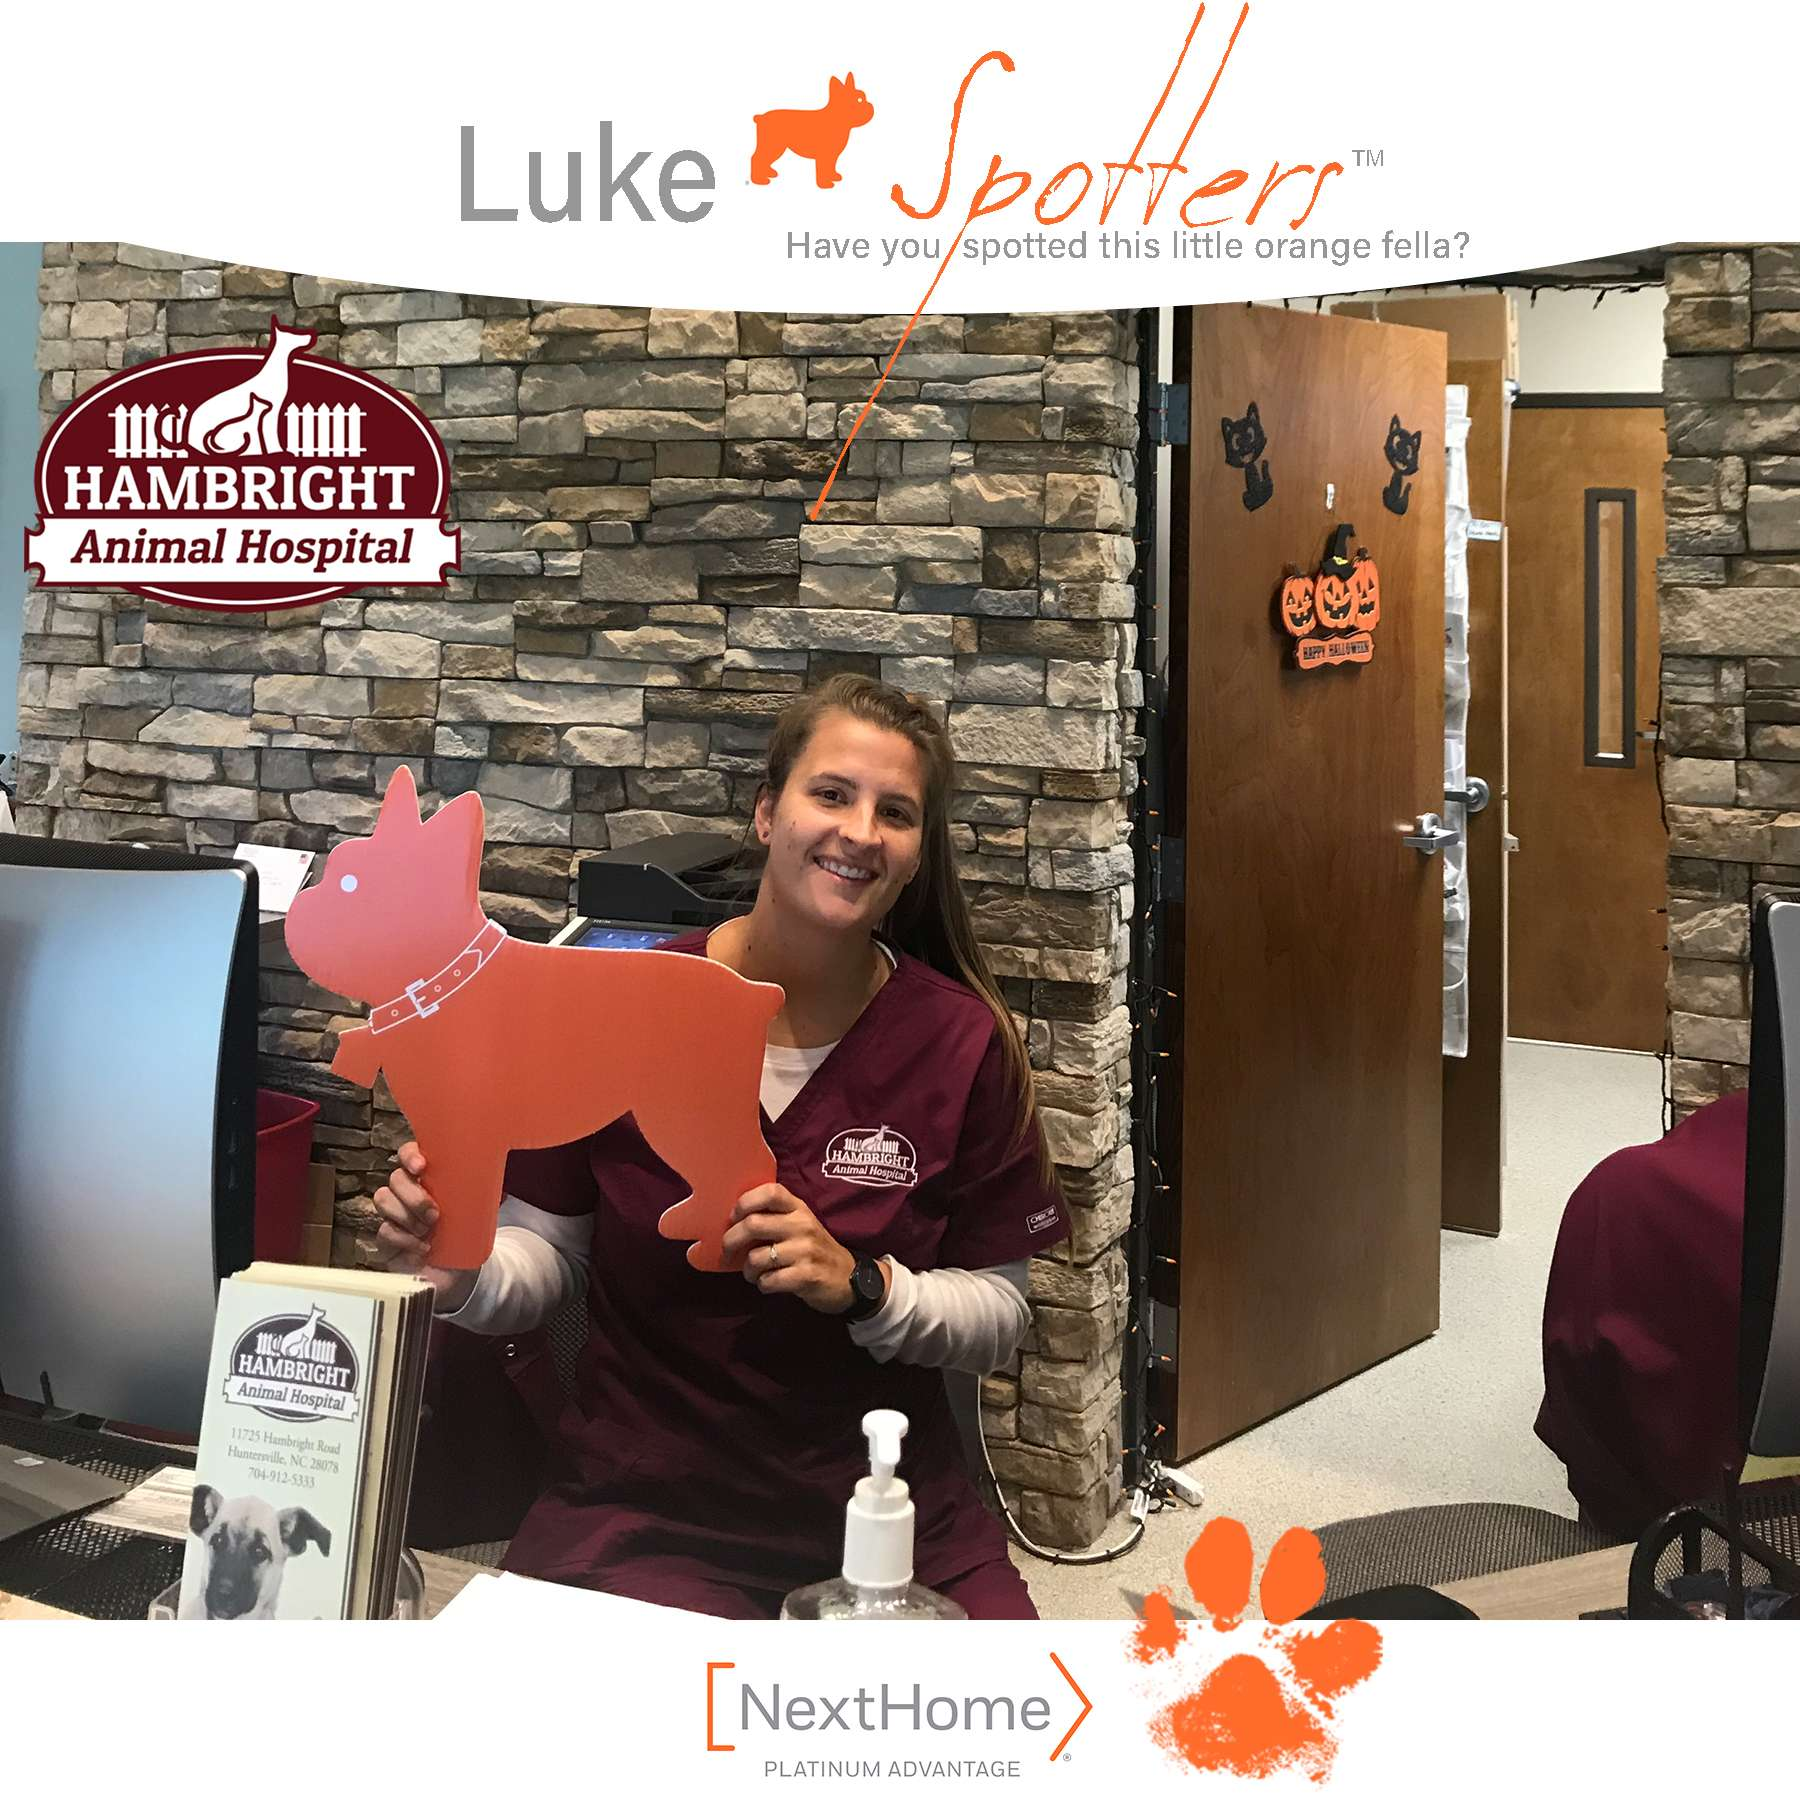 Luke and Sarah Squier, REALTOR®, making new friends at Hambright Animal Hospital